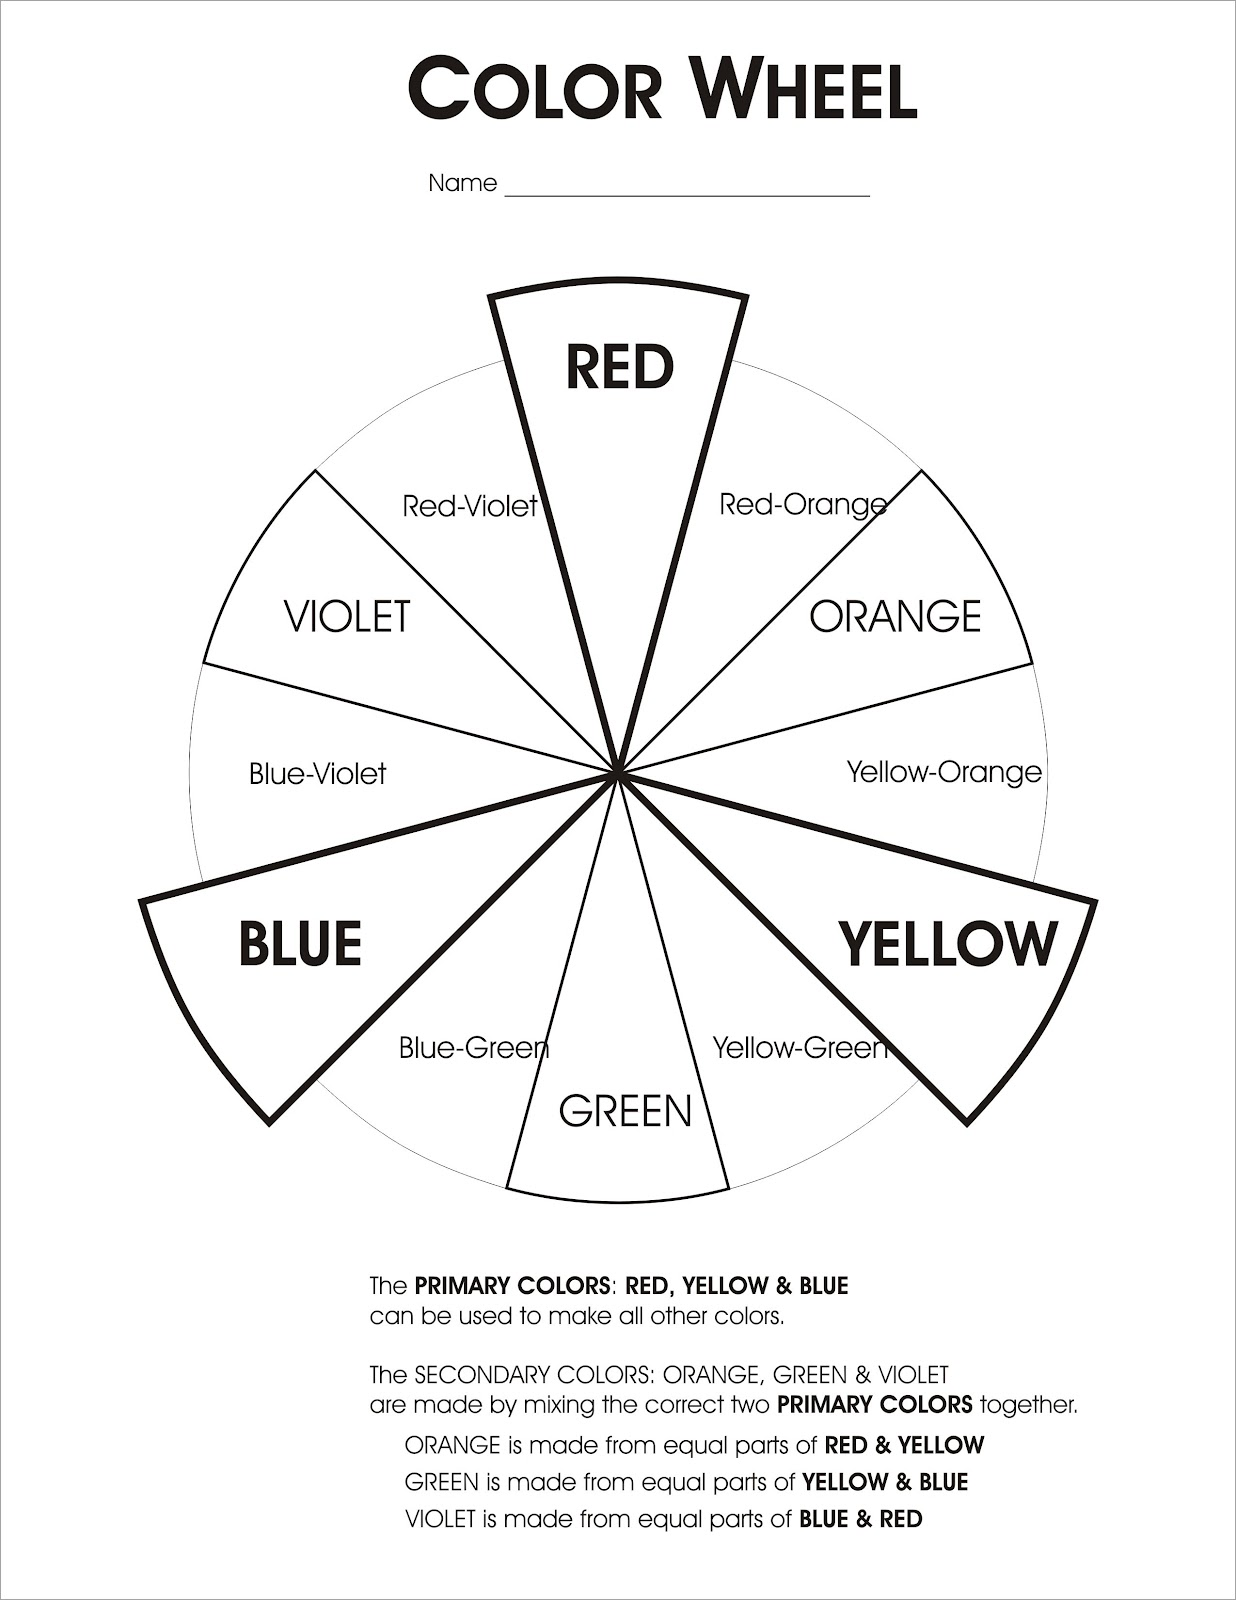 Colour Theory Worksheet | Color Wheel Worksheet Lesson Plan